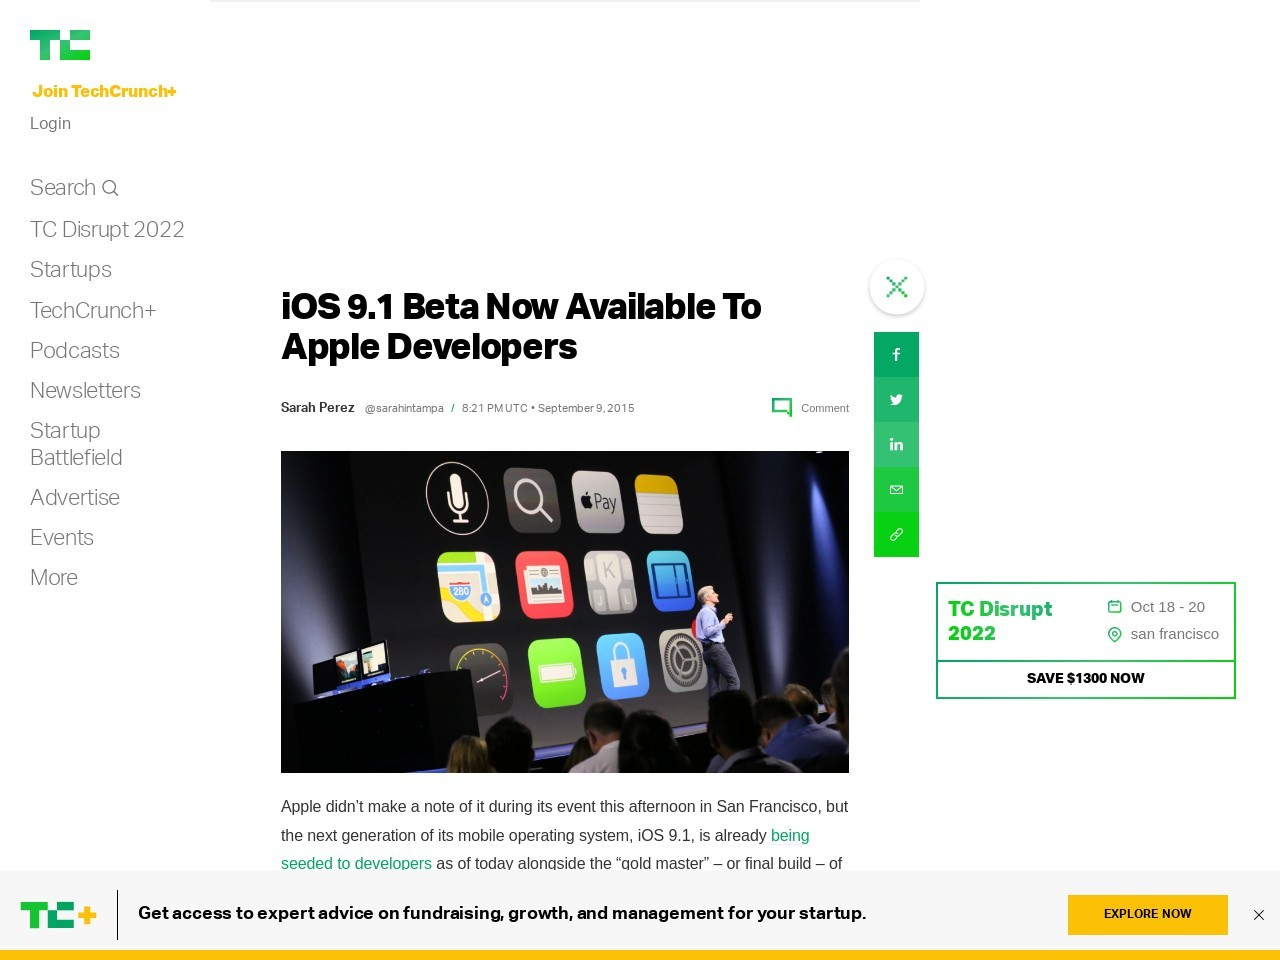 iOS 9.1 Beta Now Available To Apple Developers …